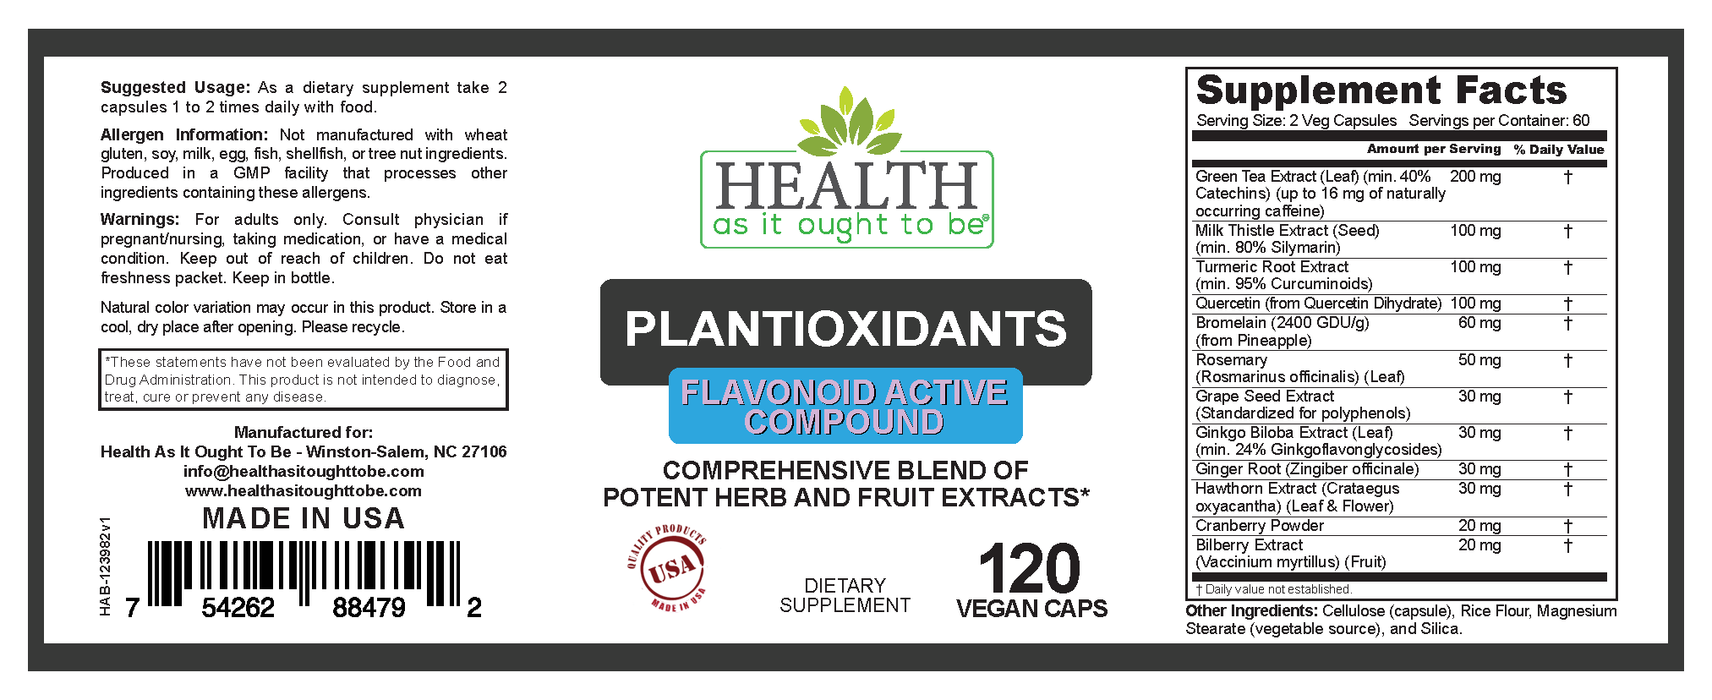 HAIOTB Plantioxidants - 120 Vegan Capsules - Health As It Ought to Be